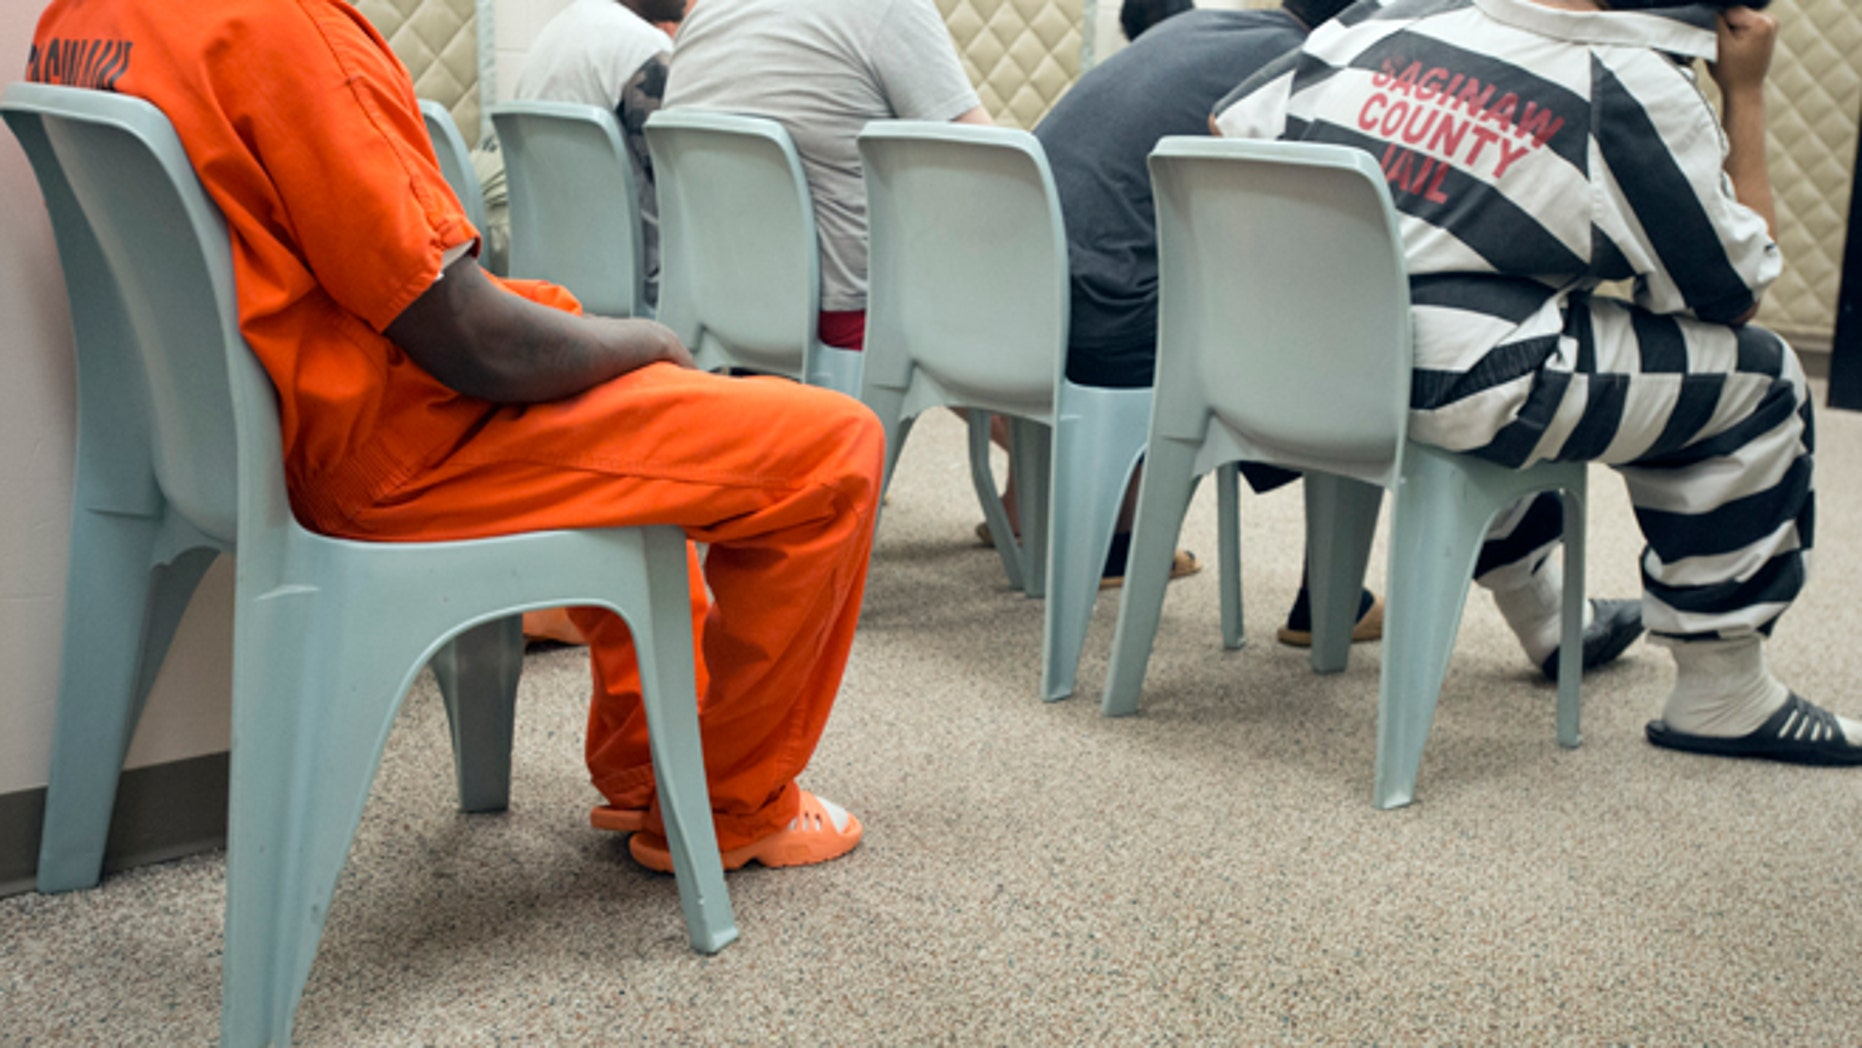 Inmates wait for their video arraignments at the Saginaw County Jail, Friday, July 18, 2014. The Saginaw County Sheriff's Department has purchased new jumpsuits, with black and white stripes, for some of the inmates at the jail. (AP Photo/The Saginaw News/MLive.com, Jeff Schrier)